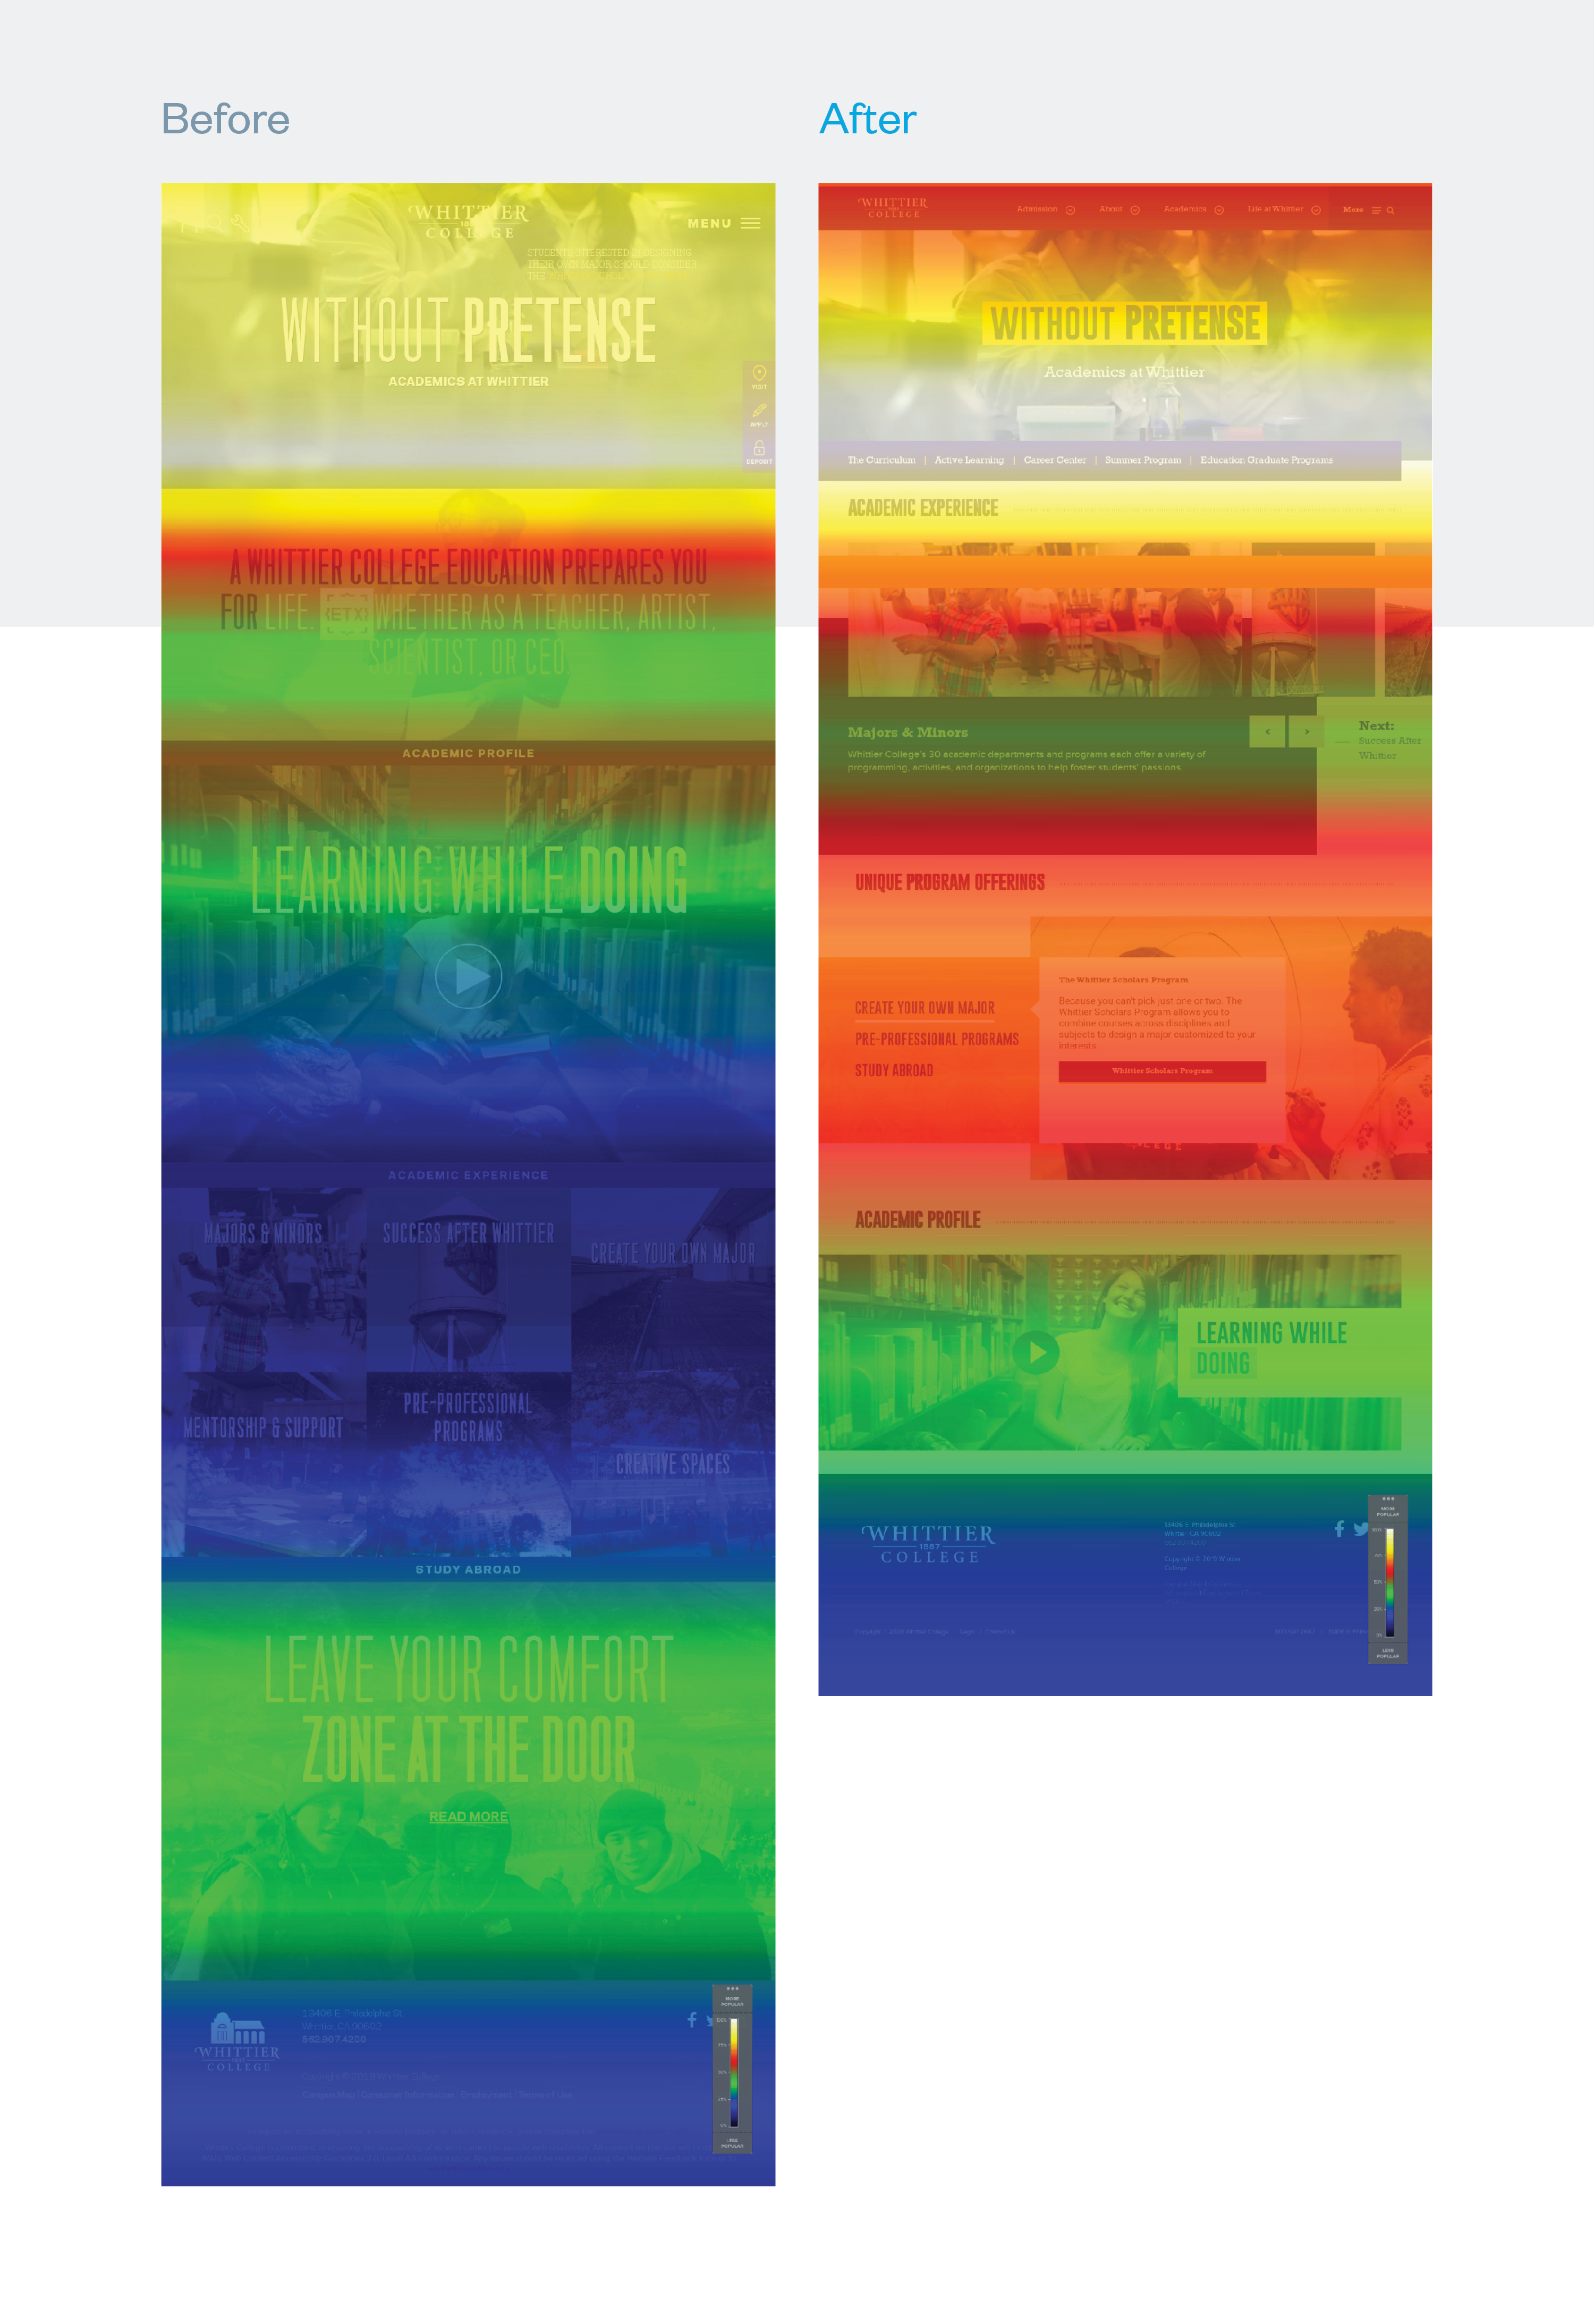 Whitter College - Heatmaps